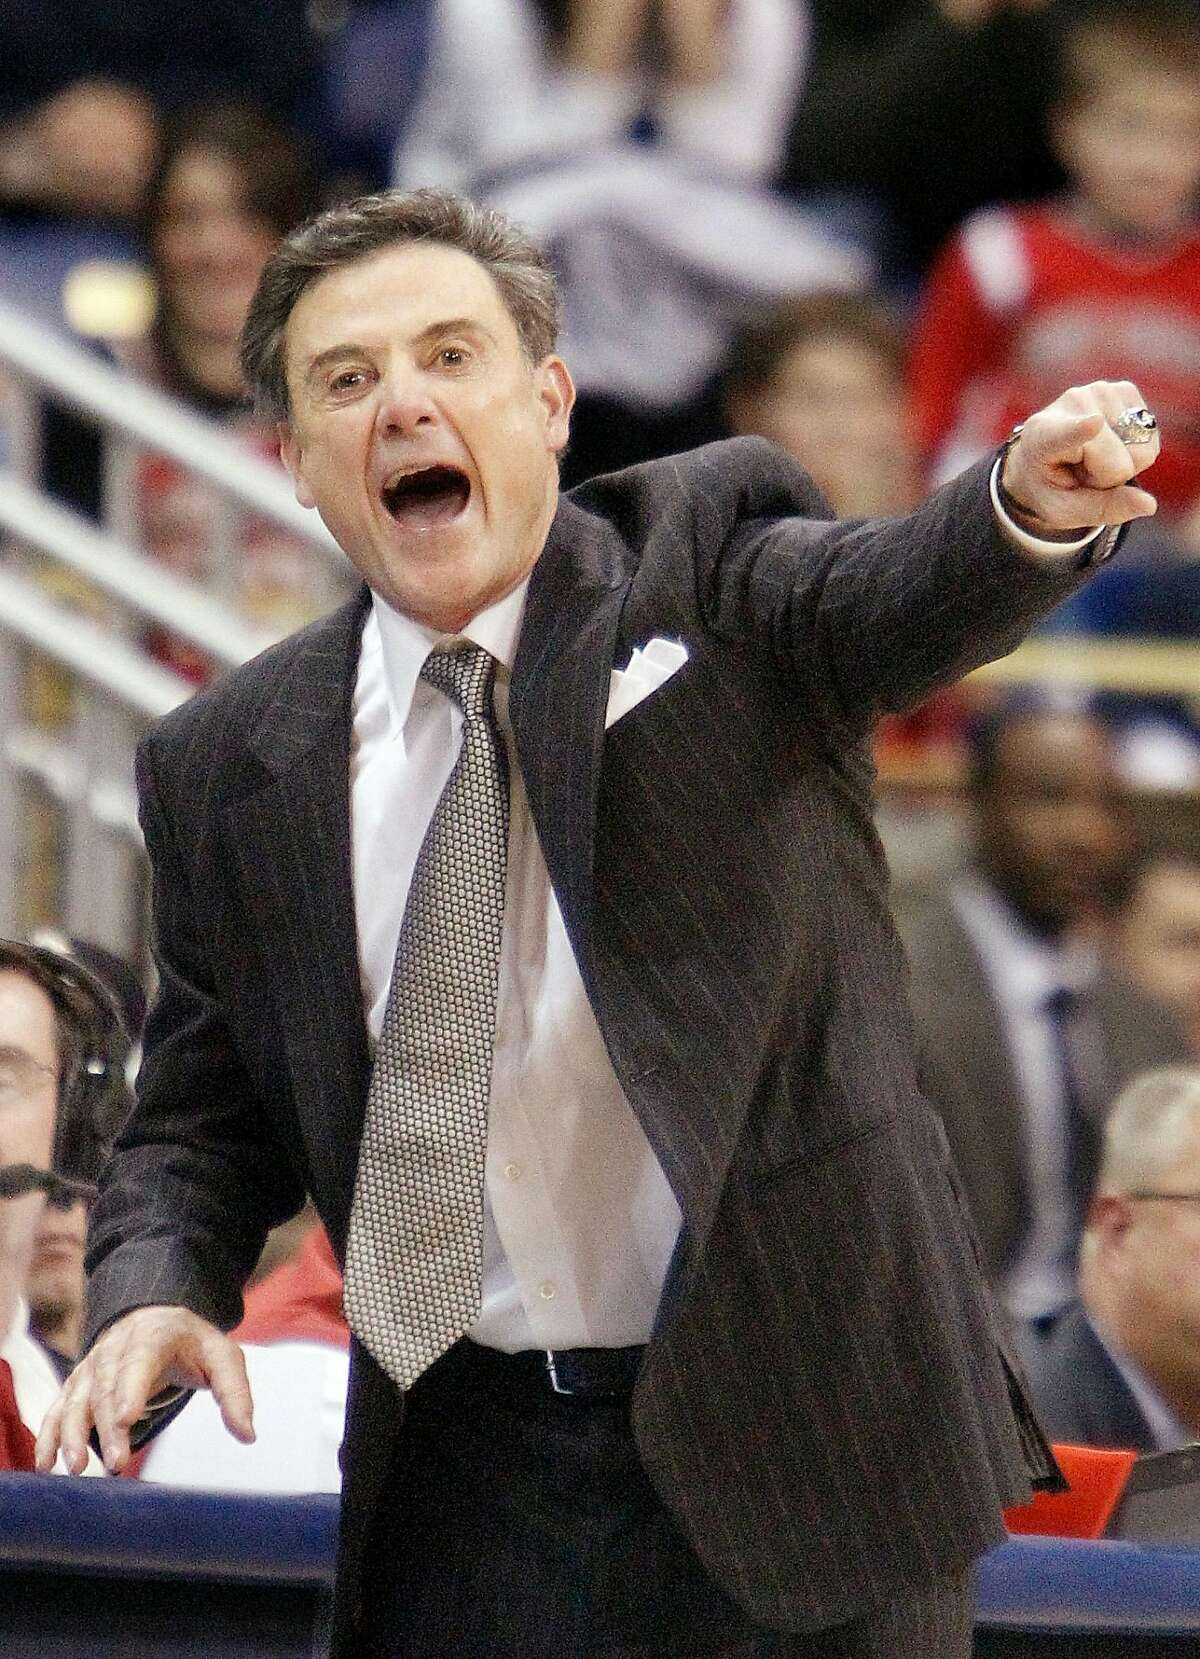 Louisville head coach Rick Pitino directs his team in the second half of the NCAA college basketball game against Pittsburgh on Saturday, Jan. 21, 2012, in Pittsburgh. Louisville won 73-62. (AP Photo/Keith Srakocic)